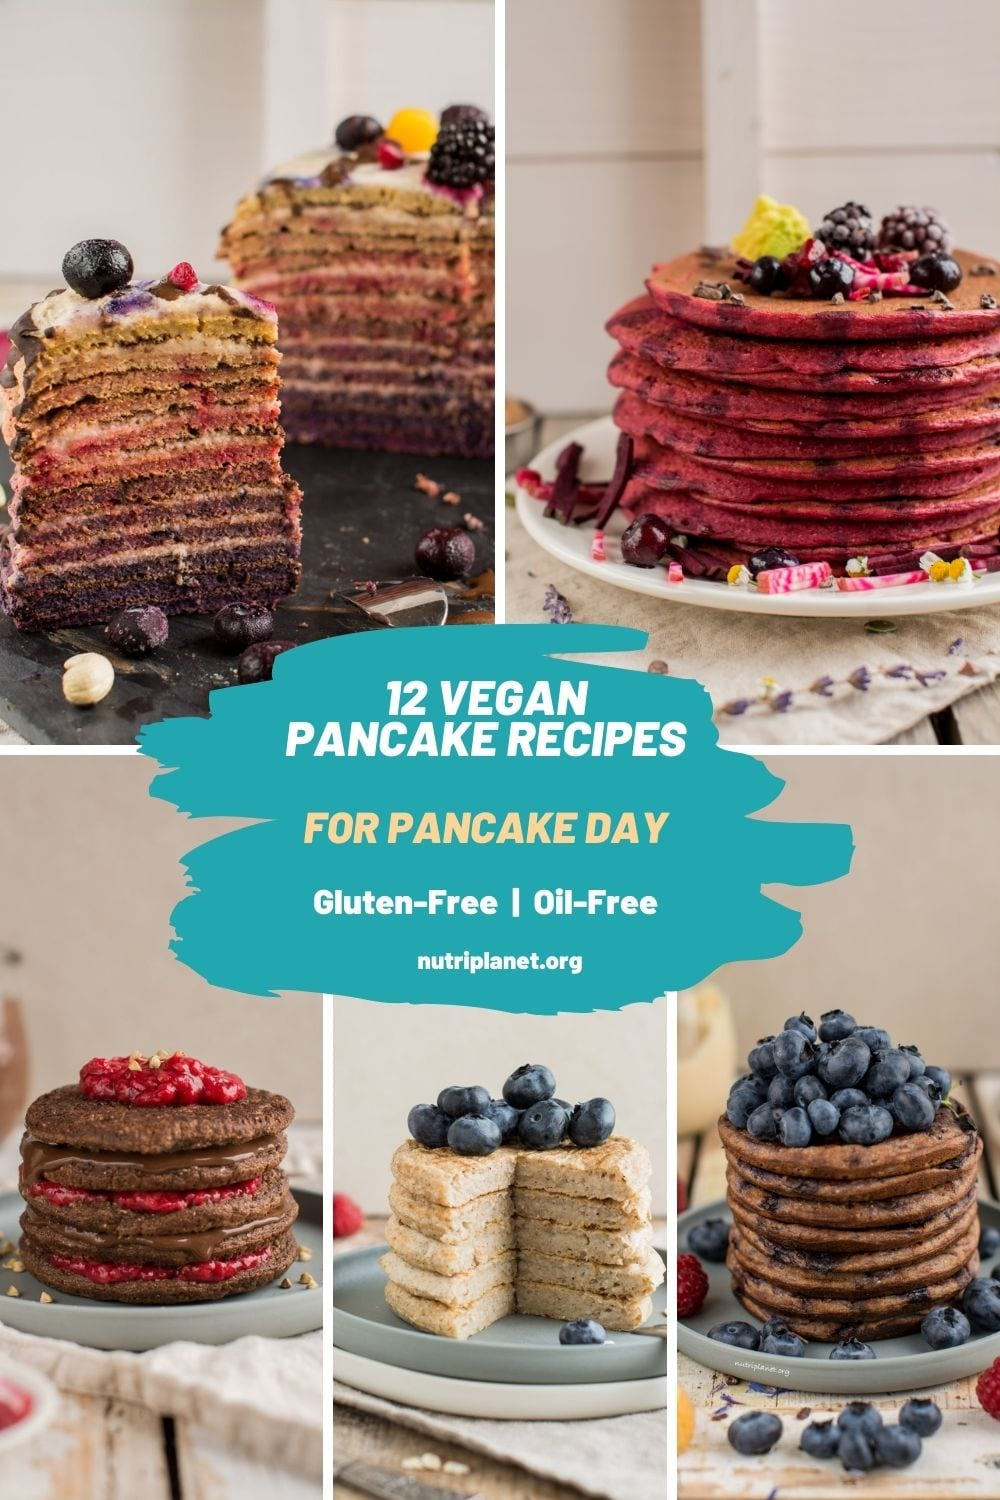 Pancake Day round-up: 12 vegan pancakes that are oil-free, gluten-free and refined sugar free.